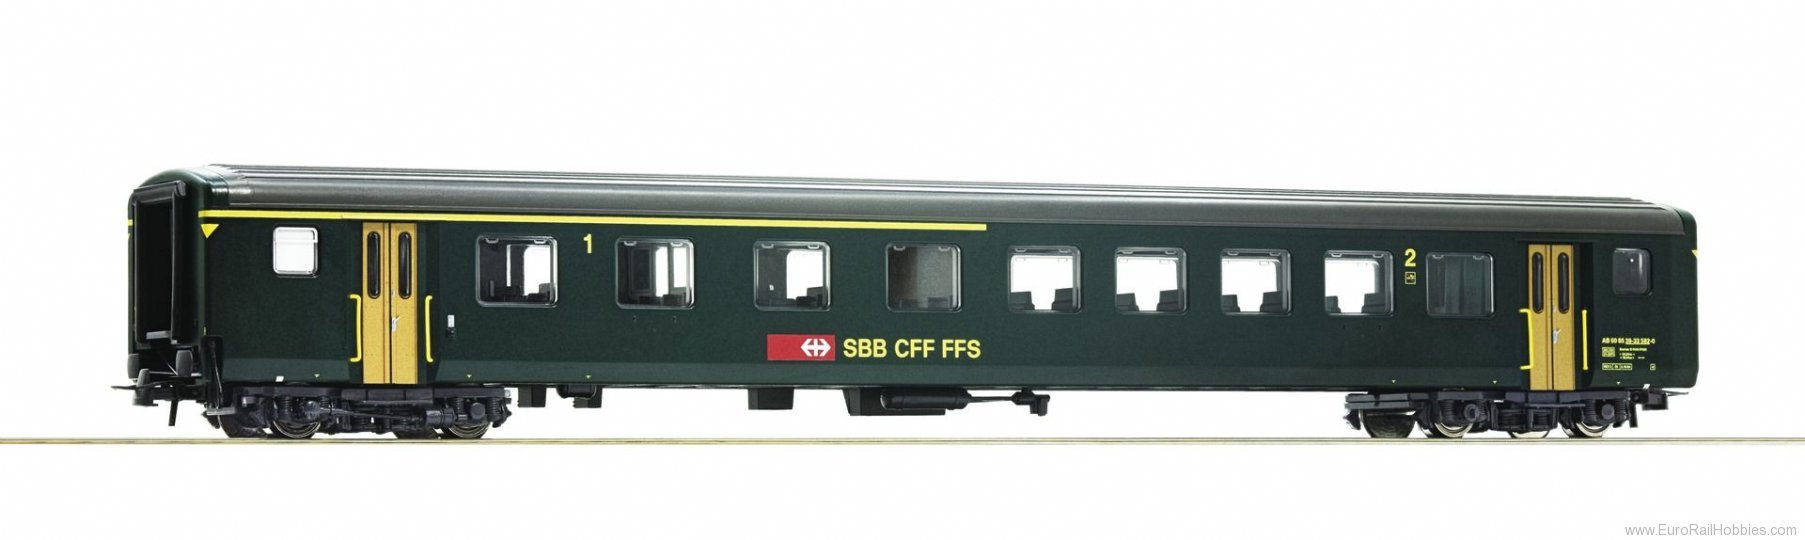 Roco 74570 1st/2nd class fast train coach EW II, SBB